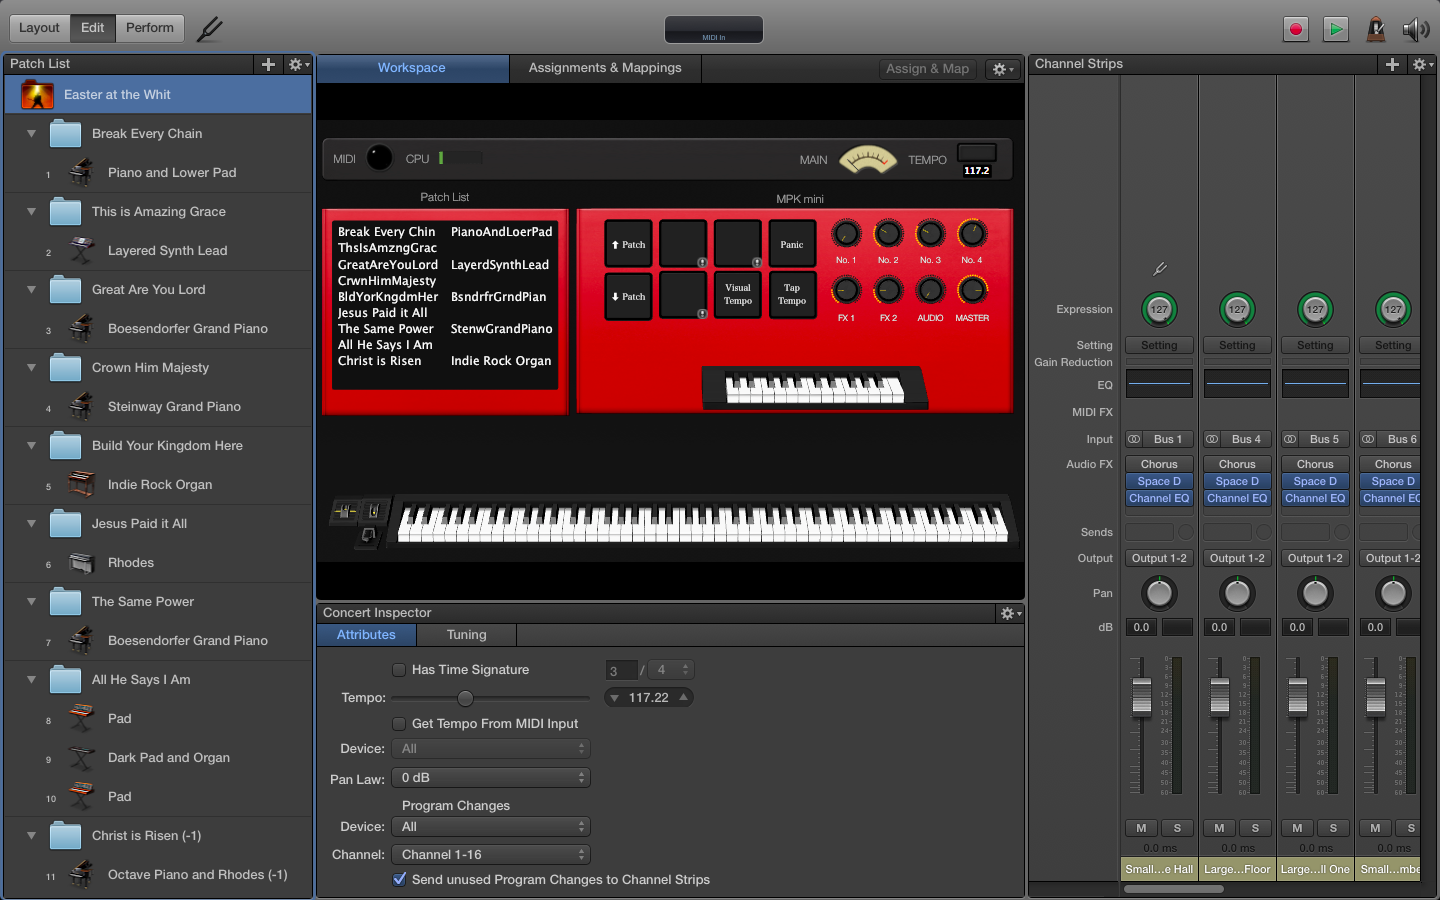 Mainstage tutorial videos learn mainstage at groove3.